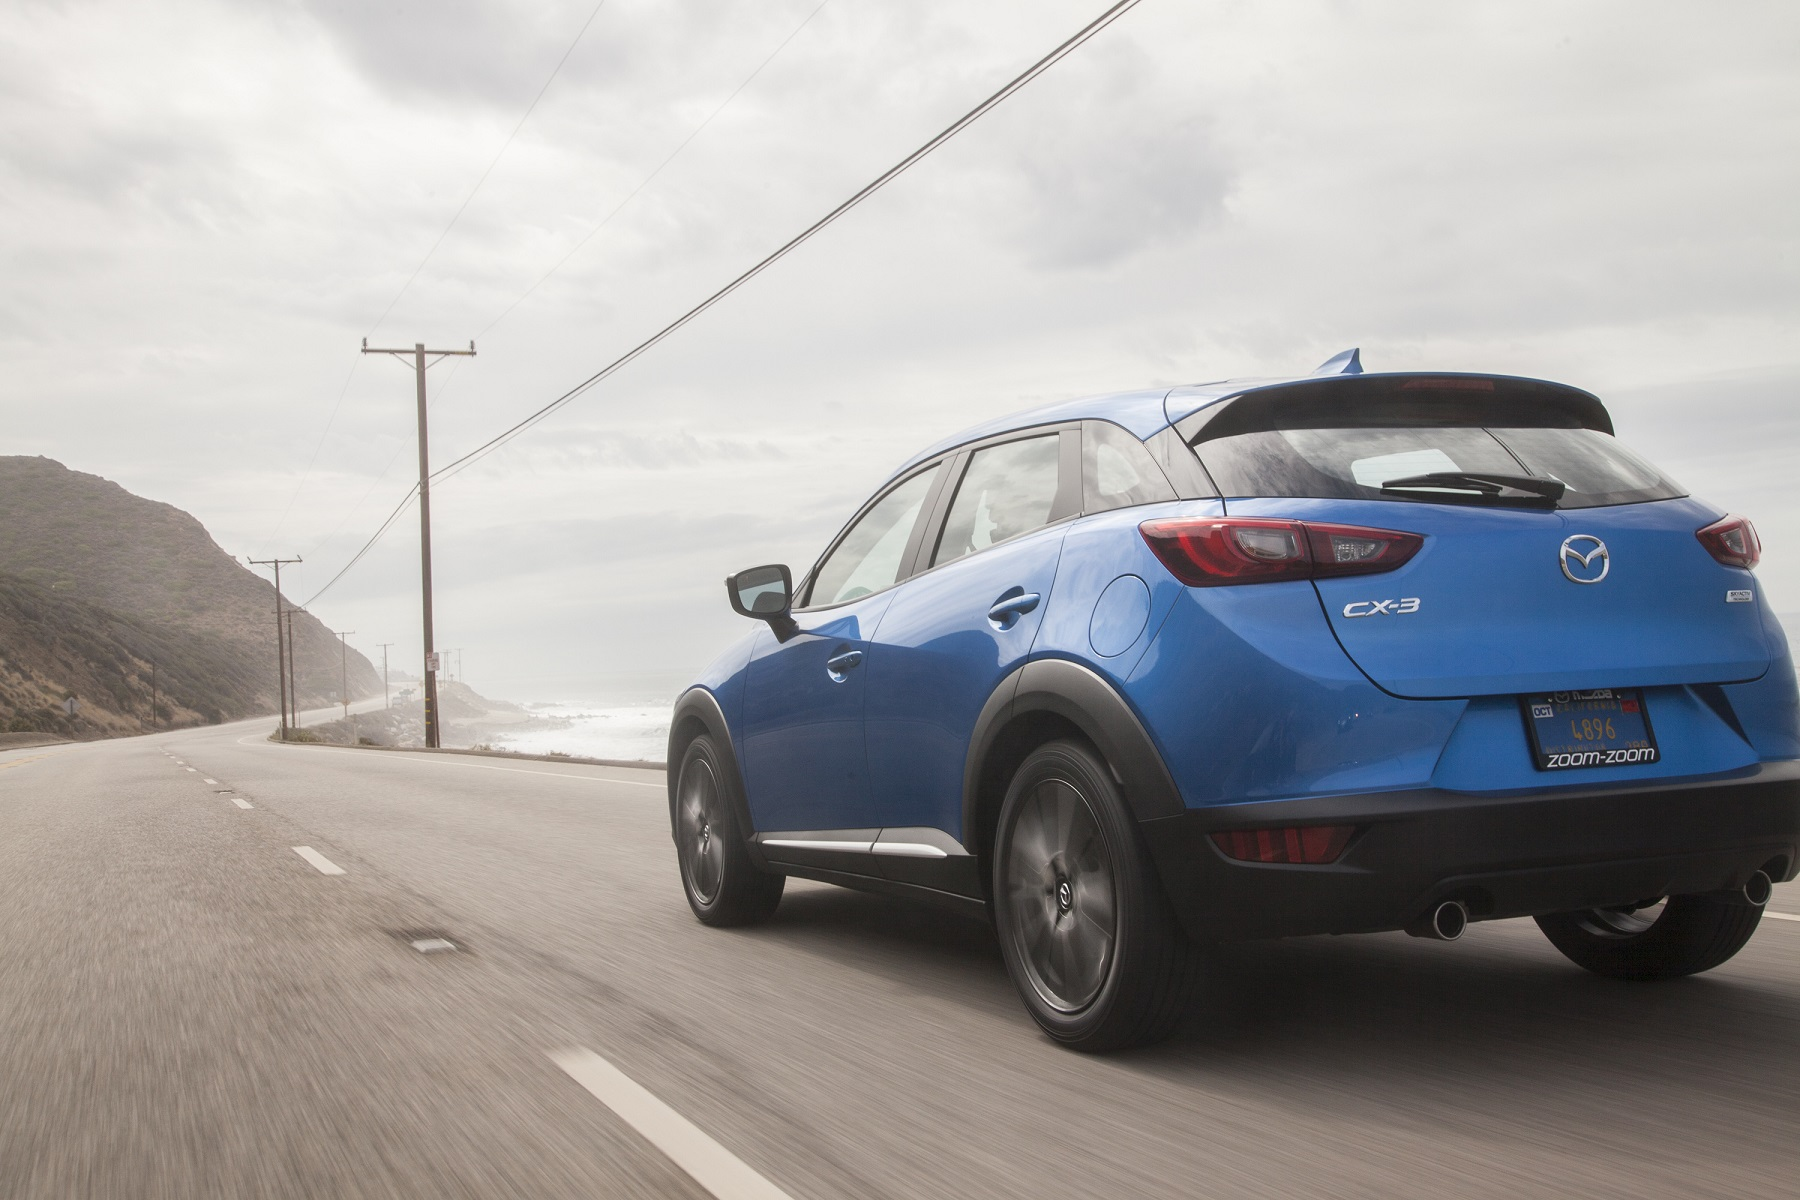 Manufacturer photo: Smartly designed and capable of handling many of life's adventures, the 2016 Mazda CX-3 is designed to meet the needs of a new generation of car buyers, supporting creative, adventurous lifestyles wherever -- from the urban sprawl to the weekend getaway